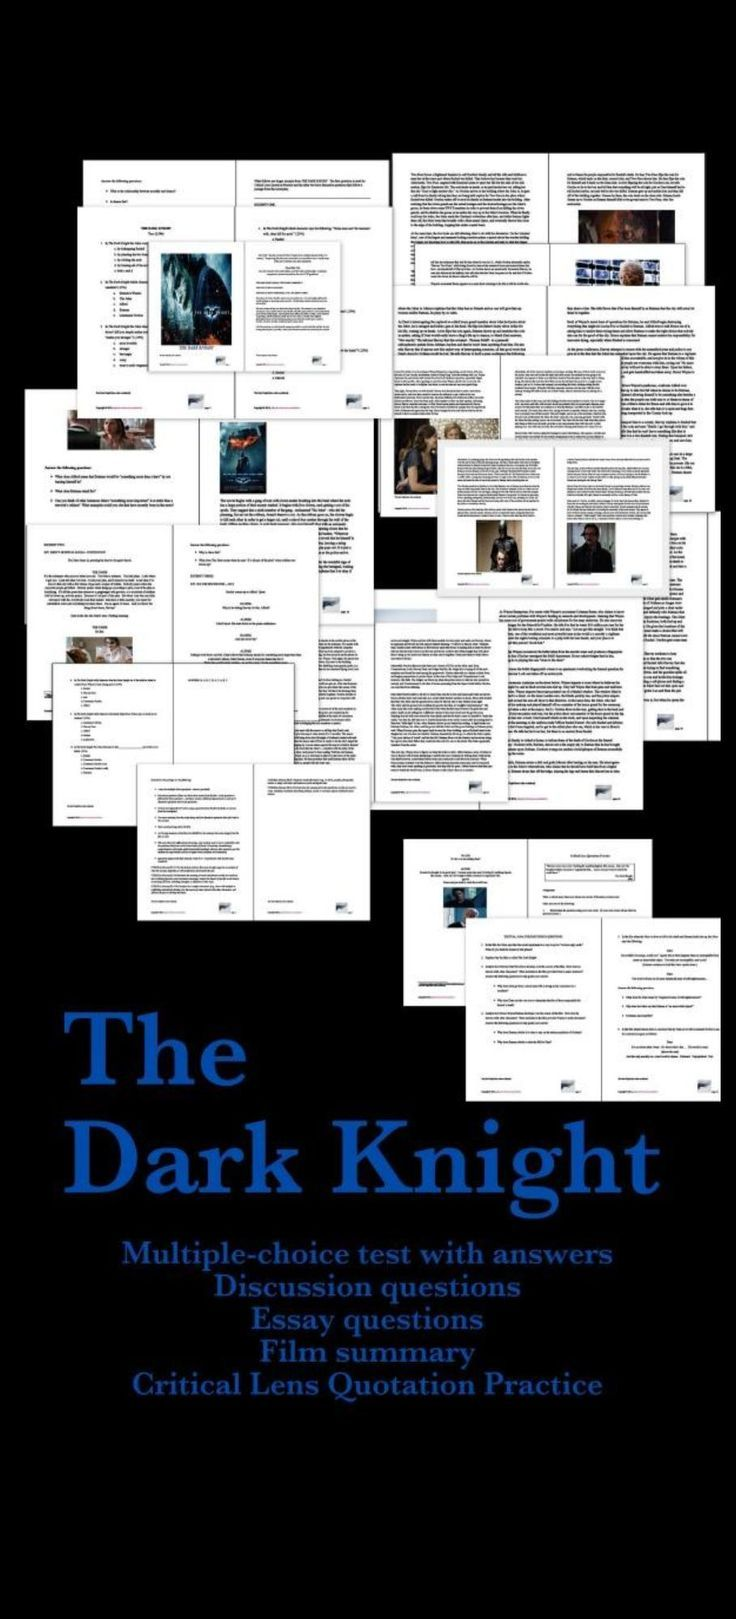 must see essay questions pins college organisation film study the dark knight test summary script excerpts critical lens q